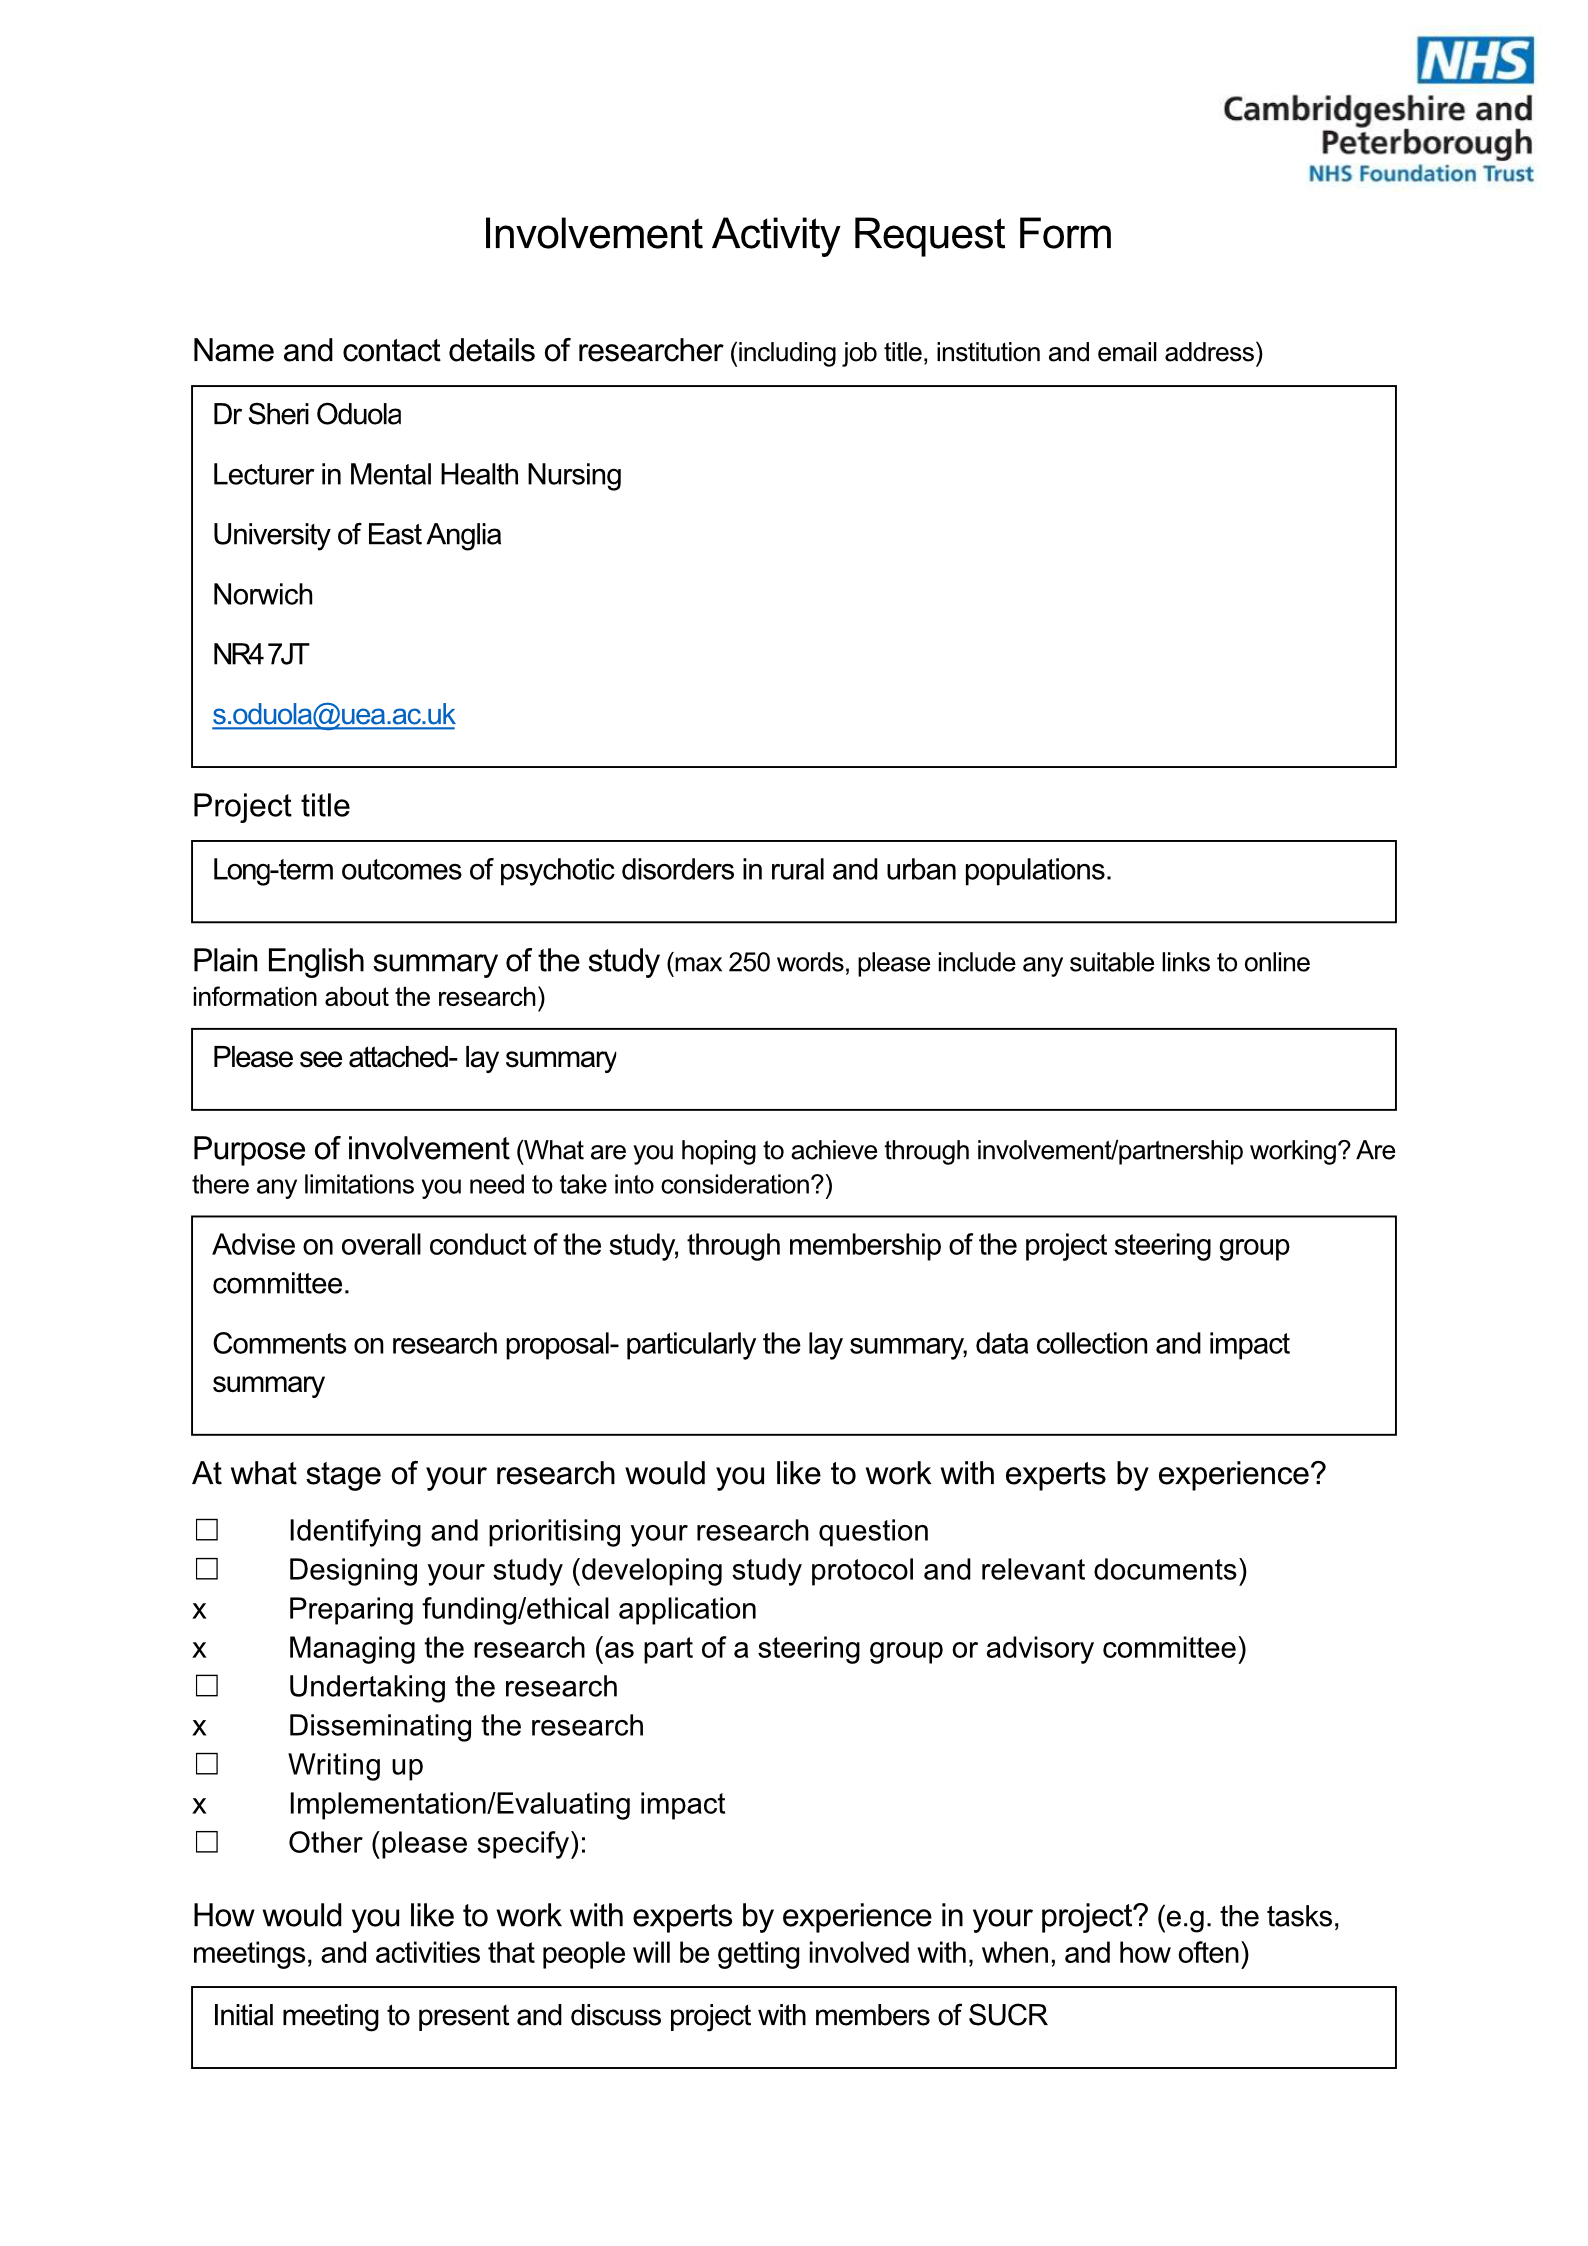 Oduola- SUCRG- Involvement Activity Request Form page 1